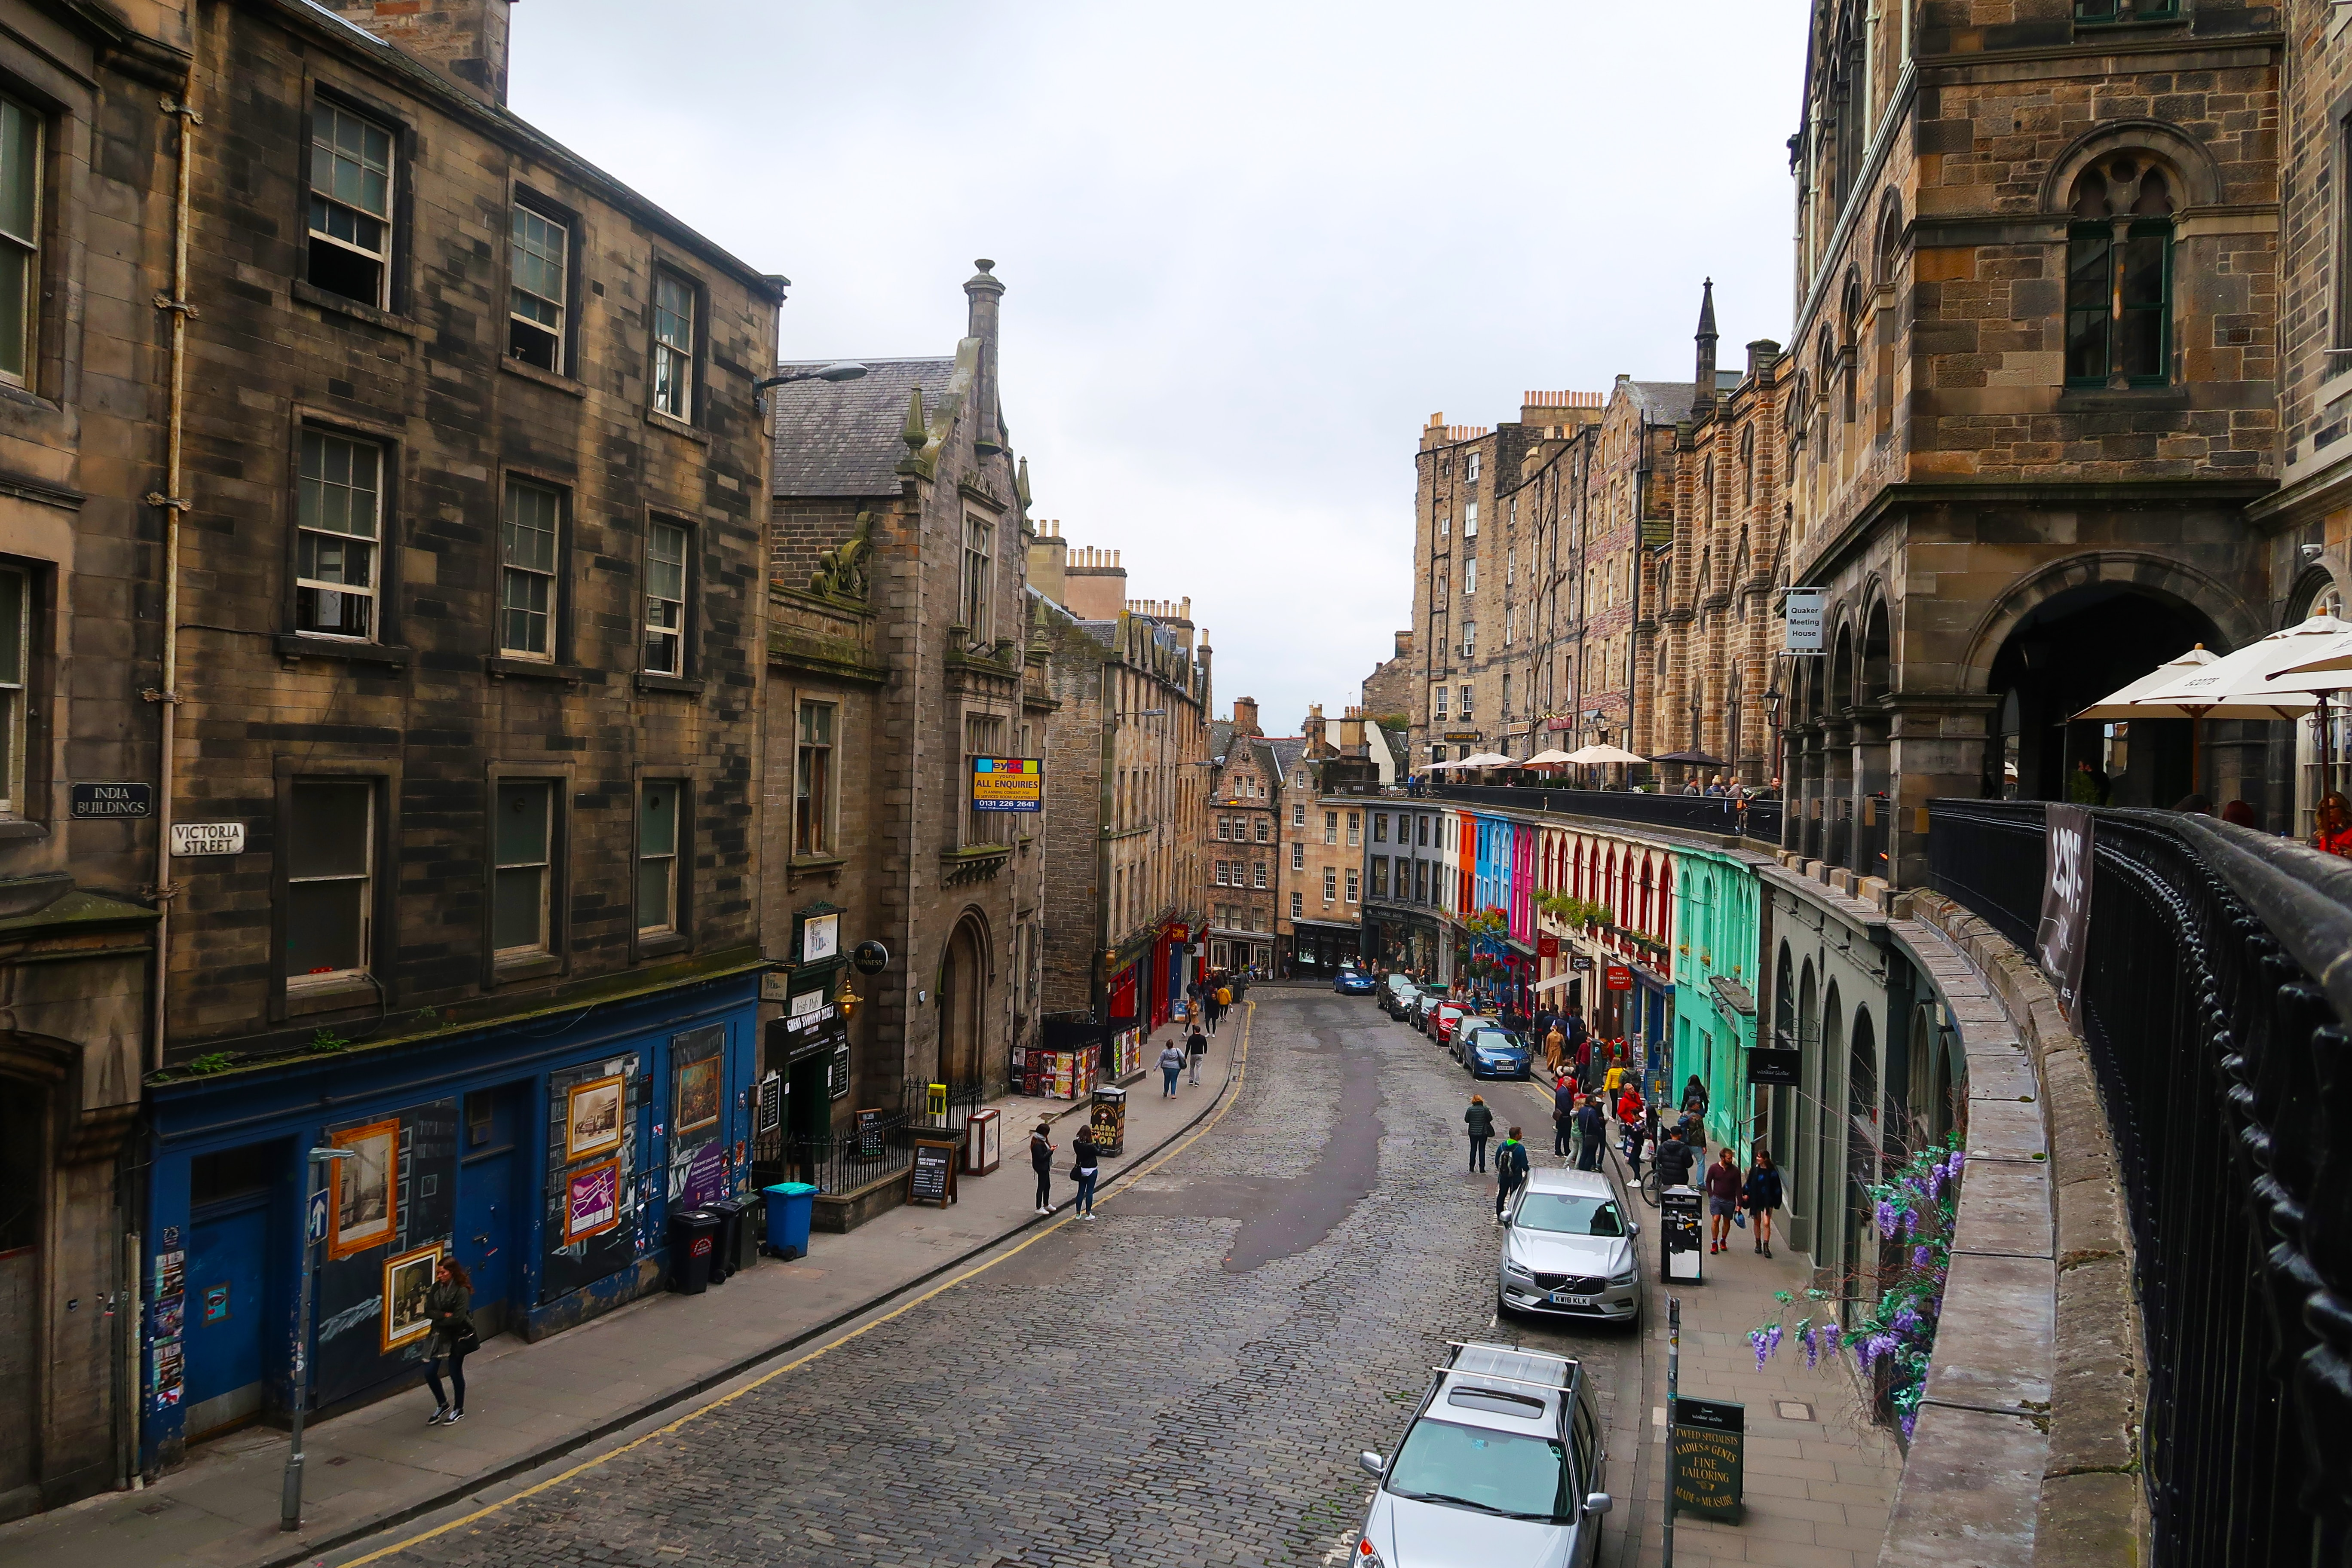 Foto: Victoria Street Edinburgh, UK By Emran Yousof On Unsplash.